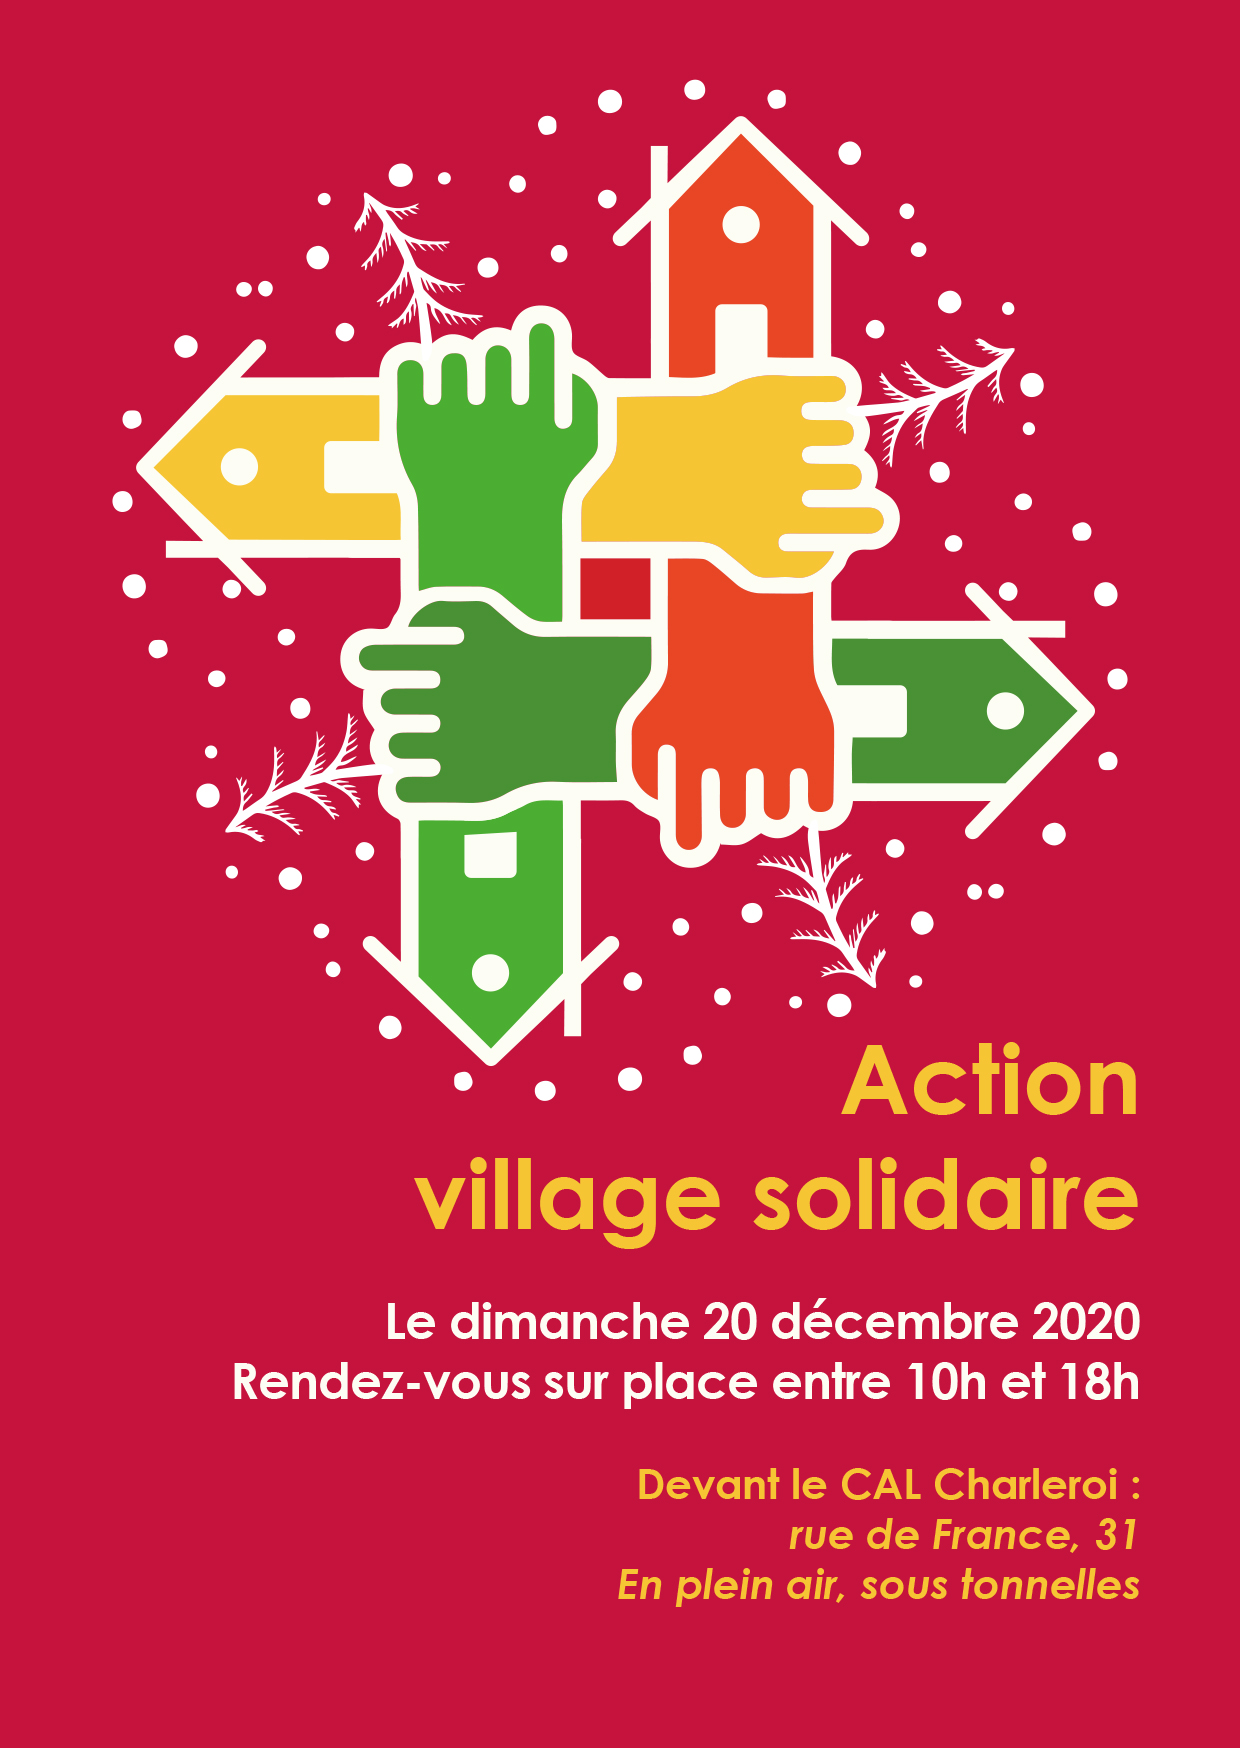 Action village solidaire